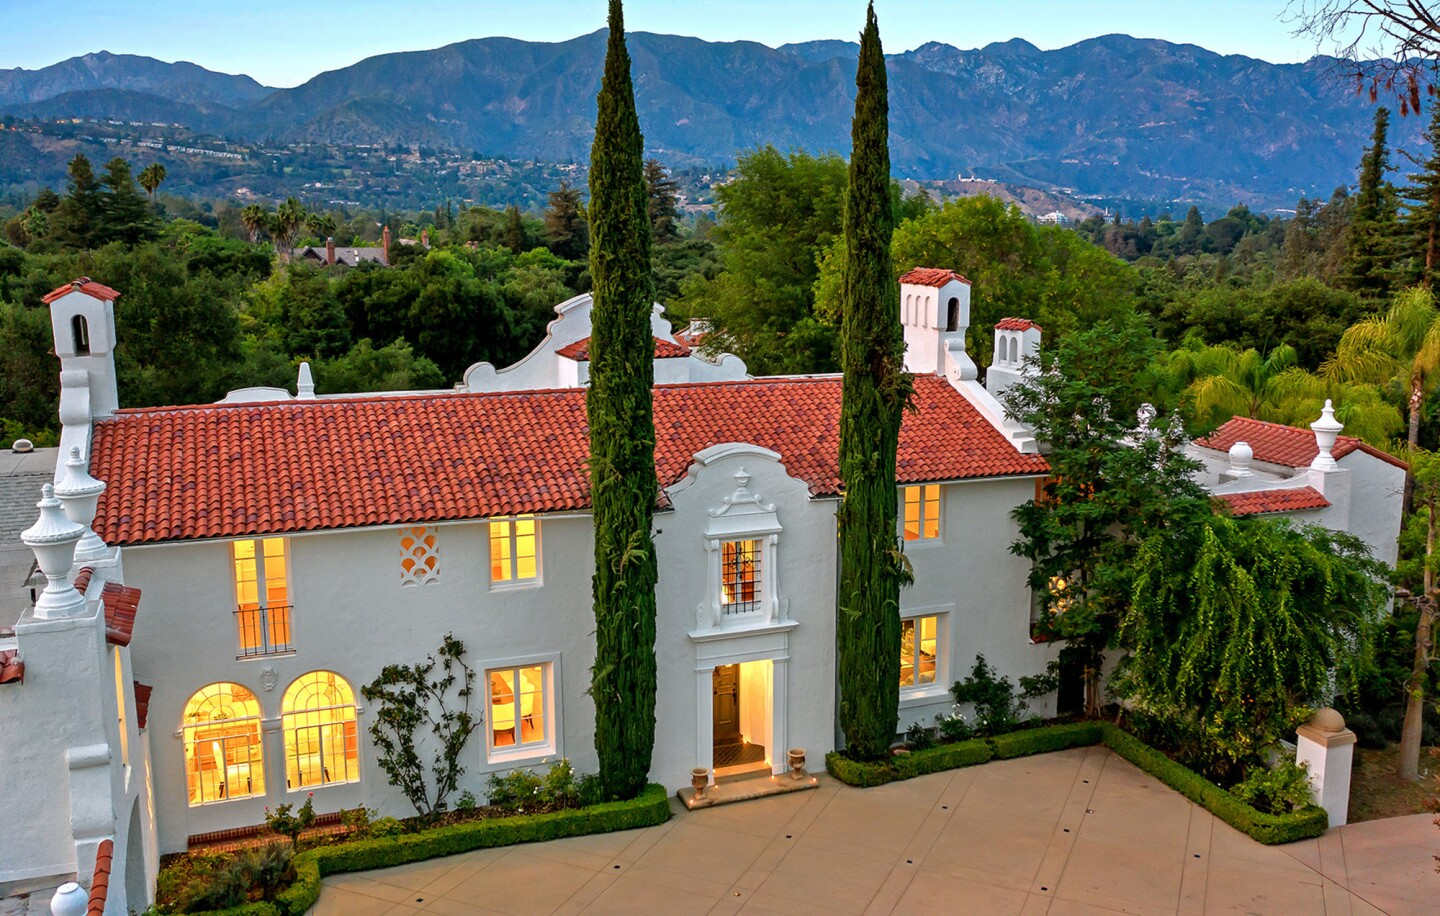 Vintage SoCal | La Cañada Flintridge 1920s estate